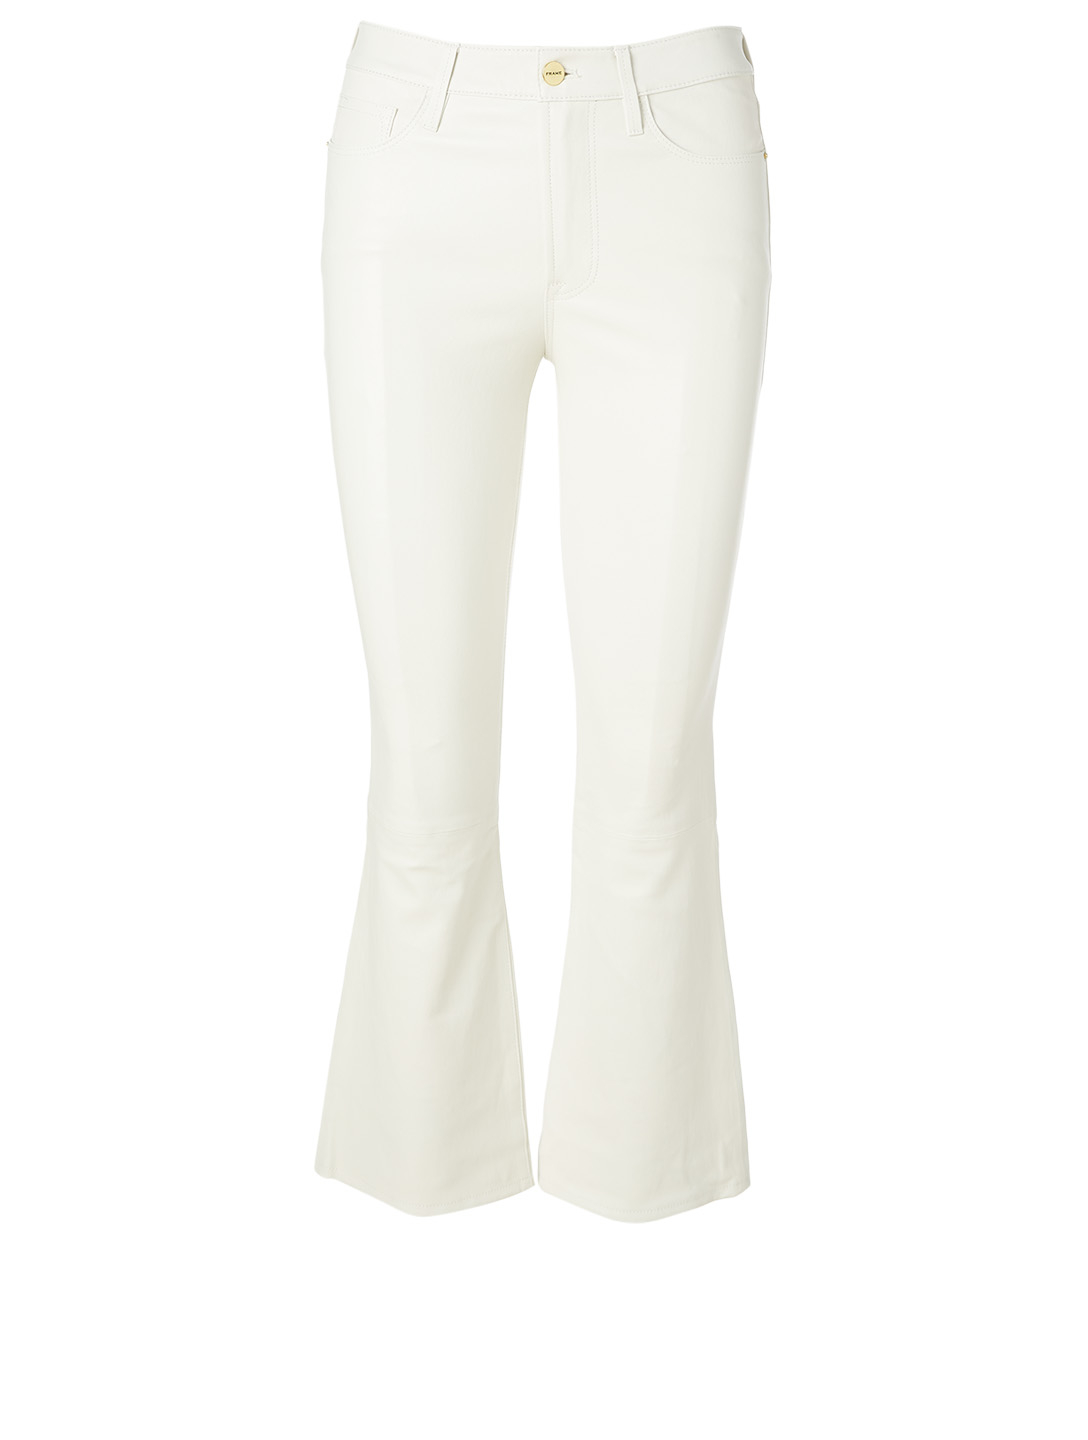 FRAME Leather Le Crop Mini Bootcut Jeans Women's White